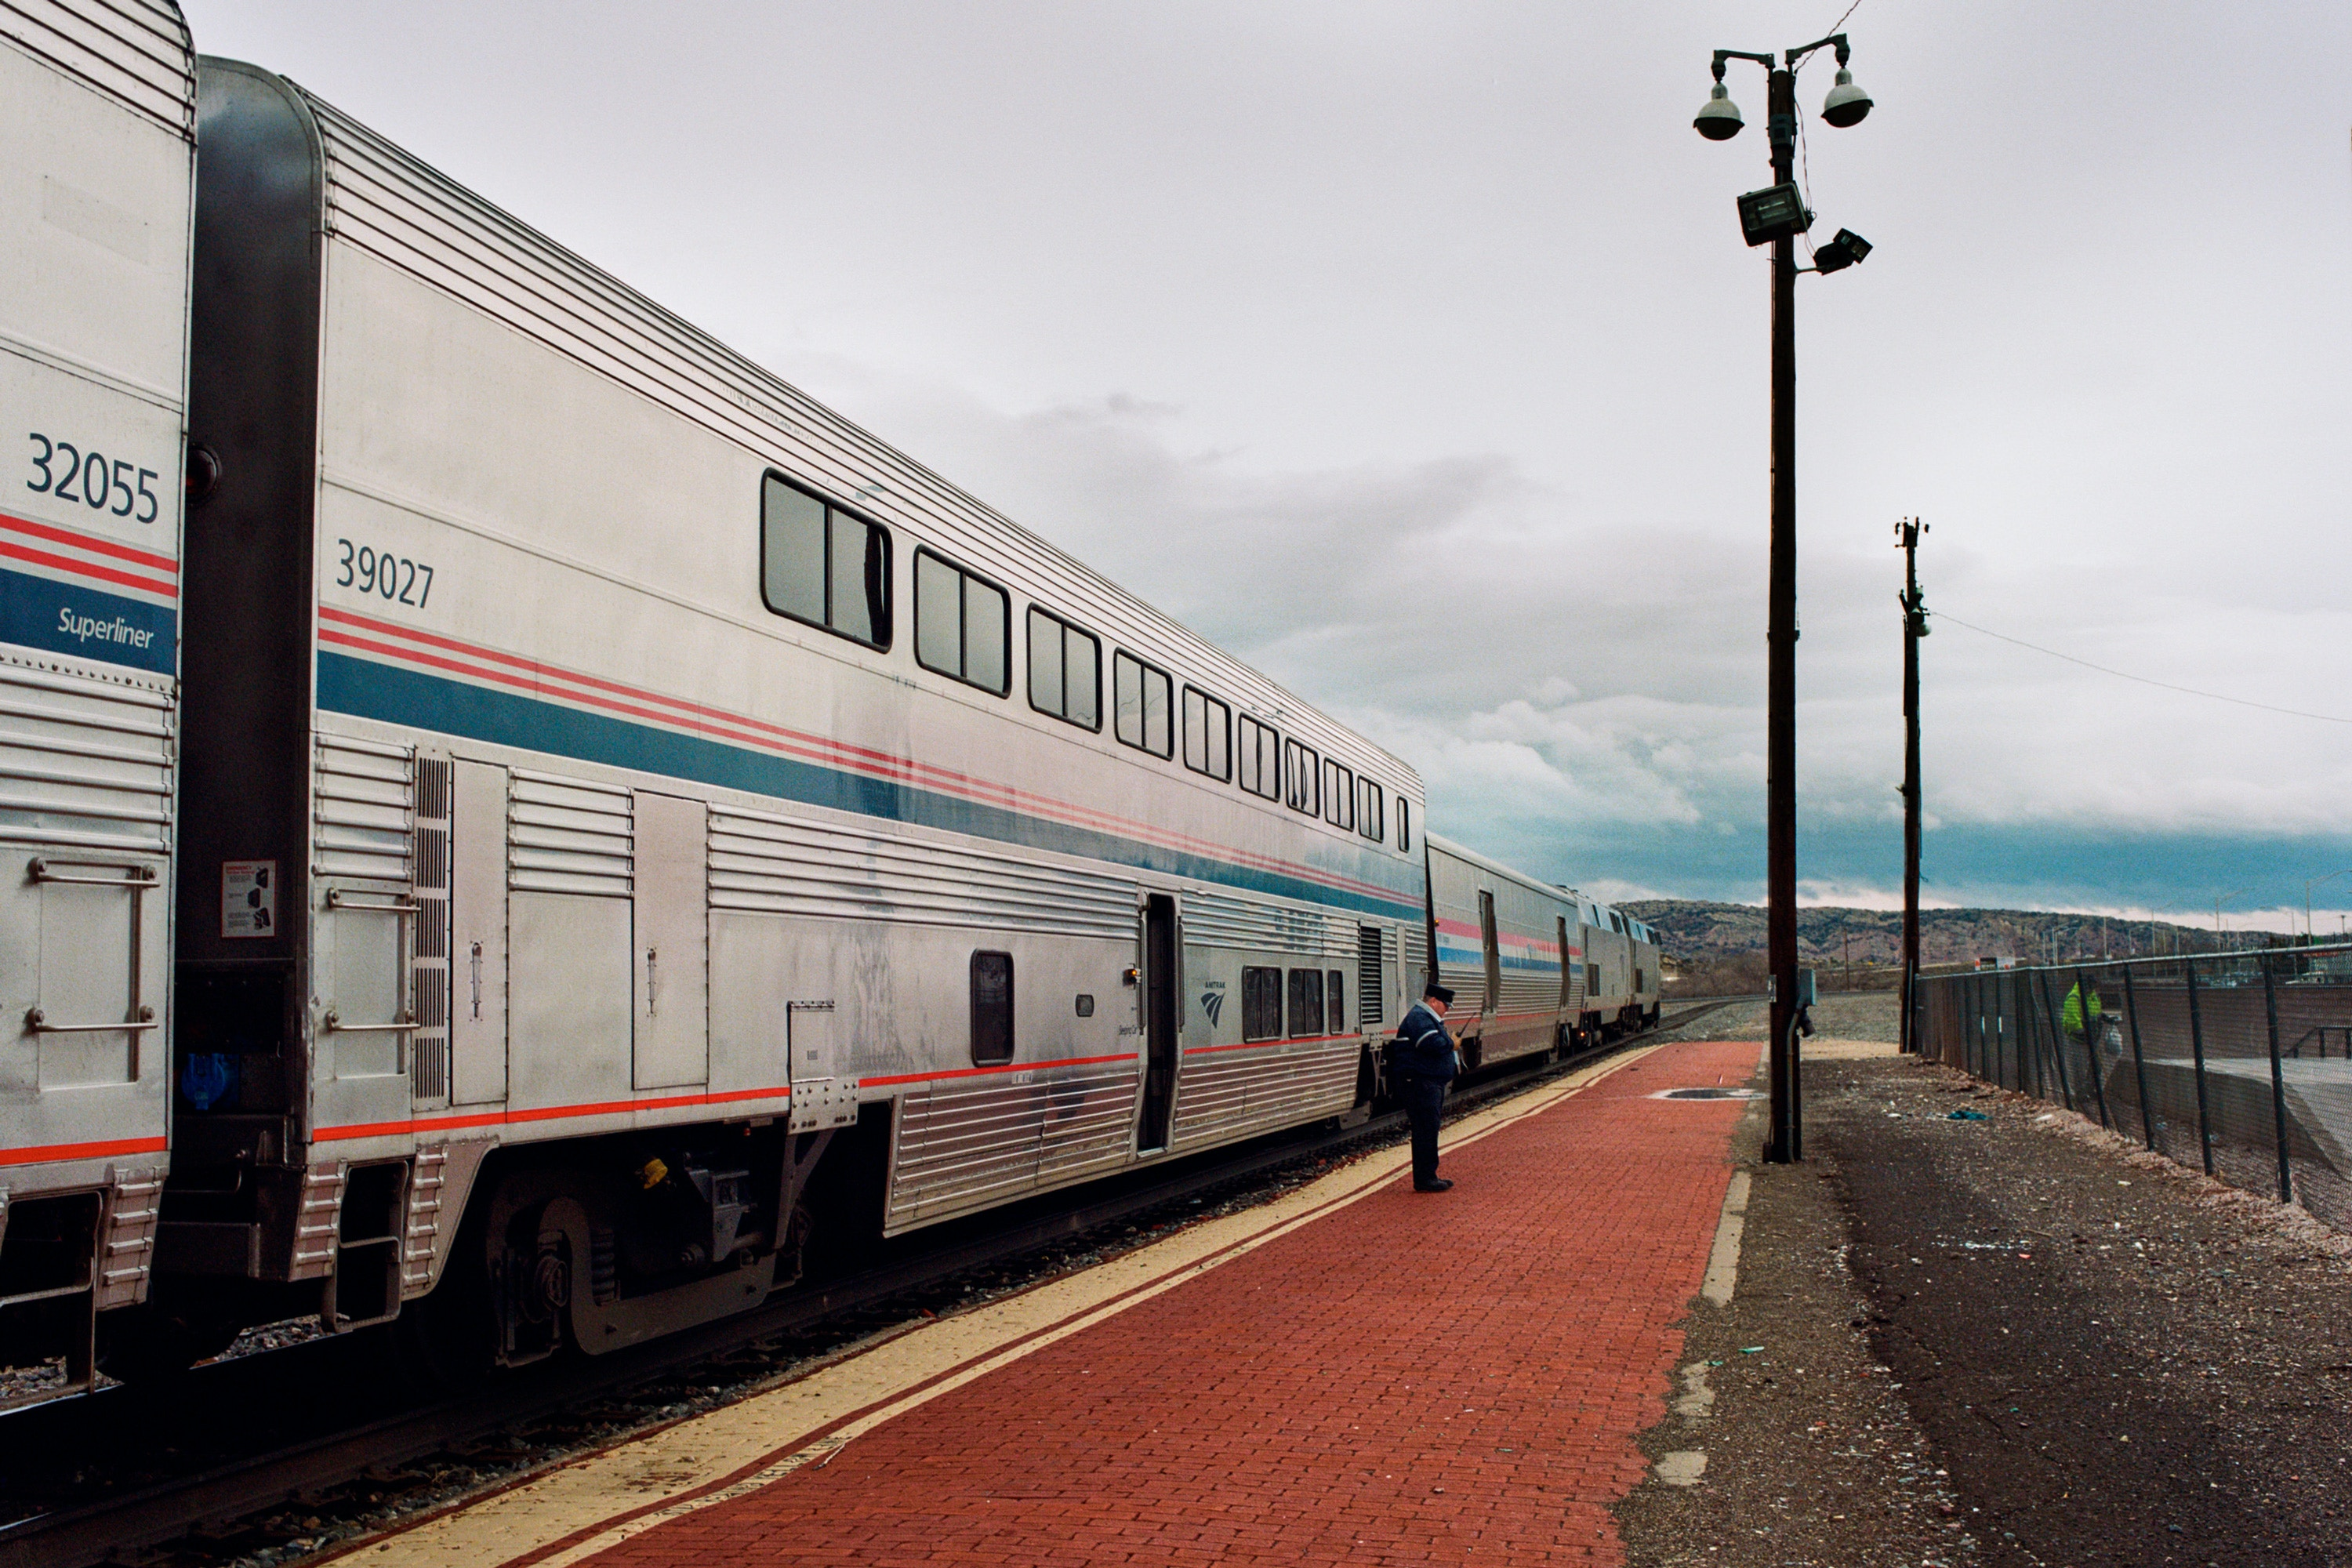 Amtrak Southwest Chief stops to pick up passengers. Those already on board have a short time to disembark fior a cigerette or some fresh air.